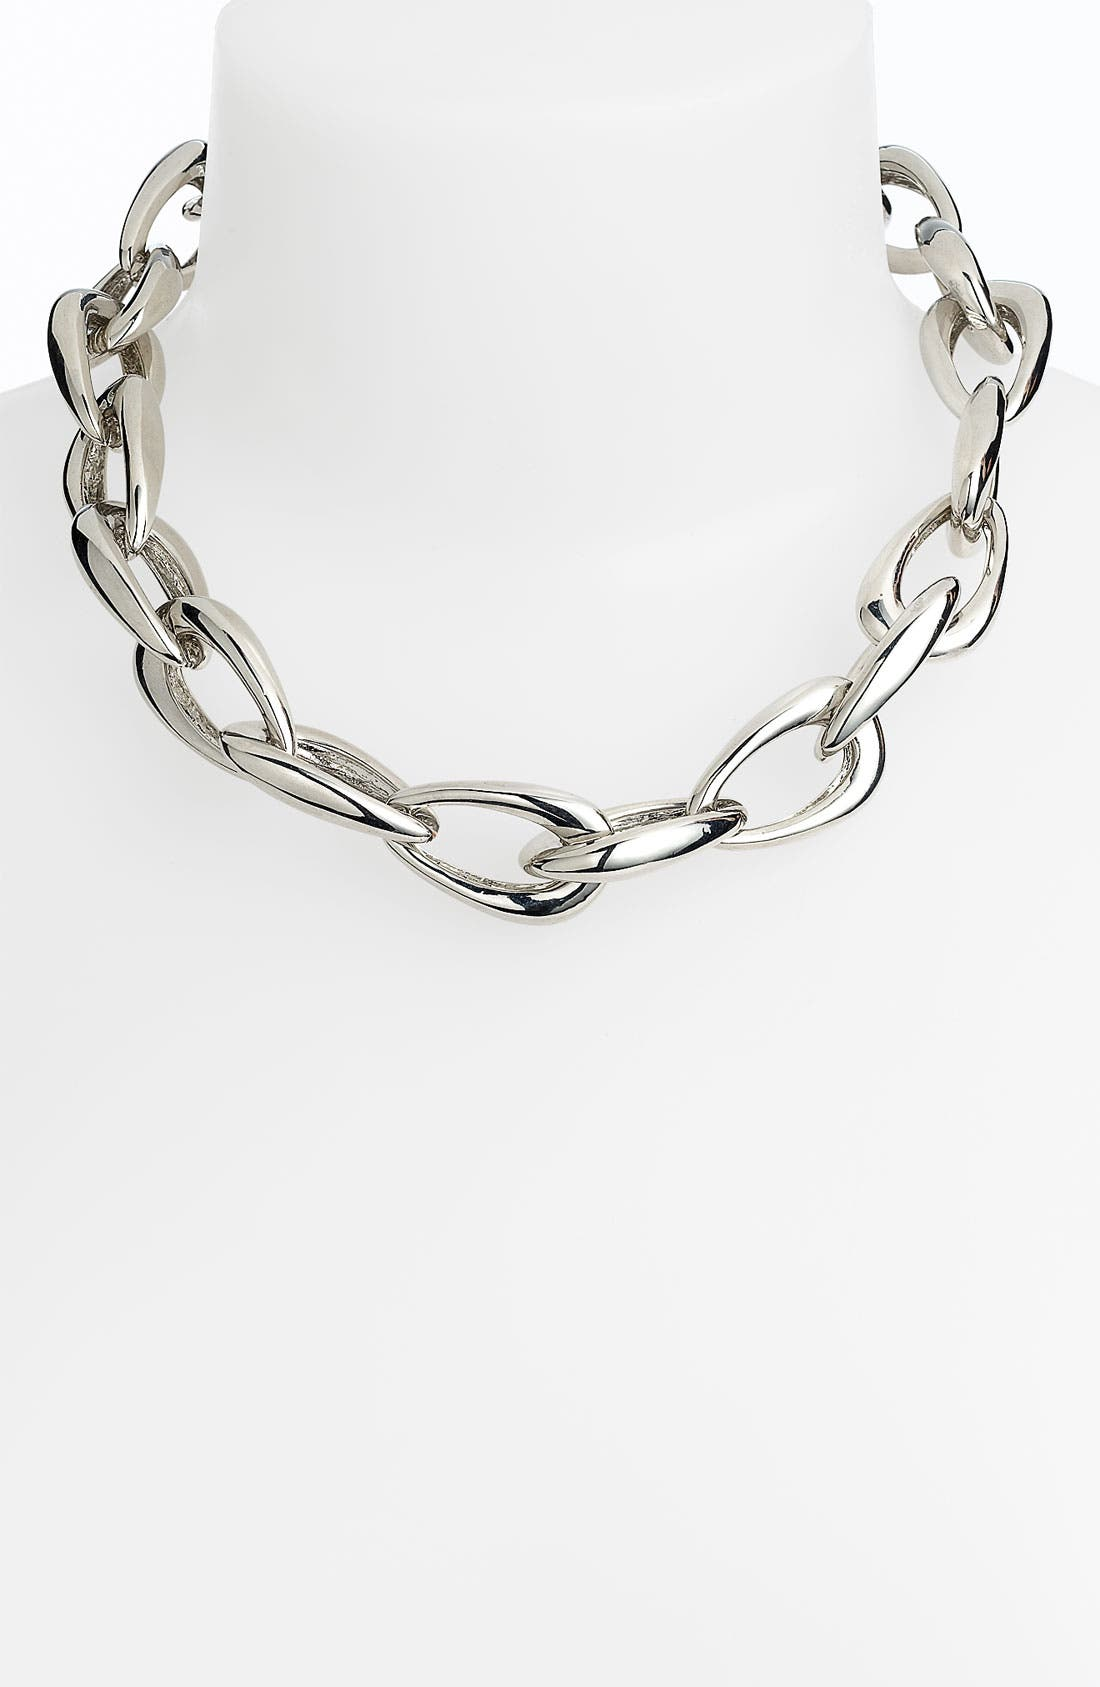 Main Image - Vince Camuto 'Basics' Collar Necklace